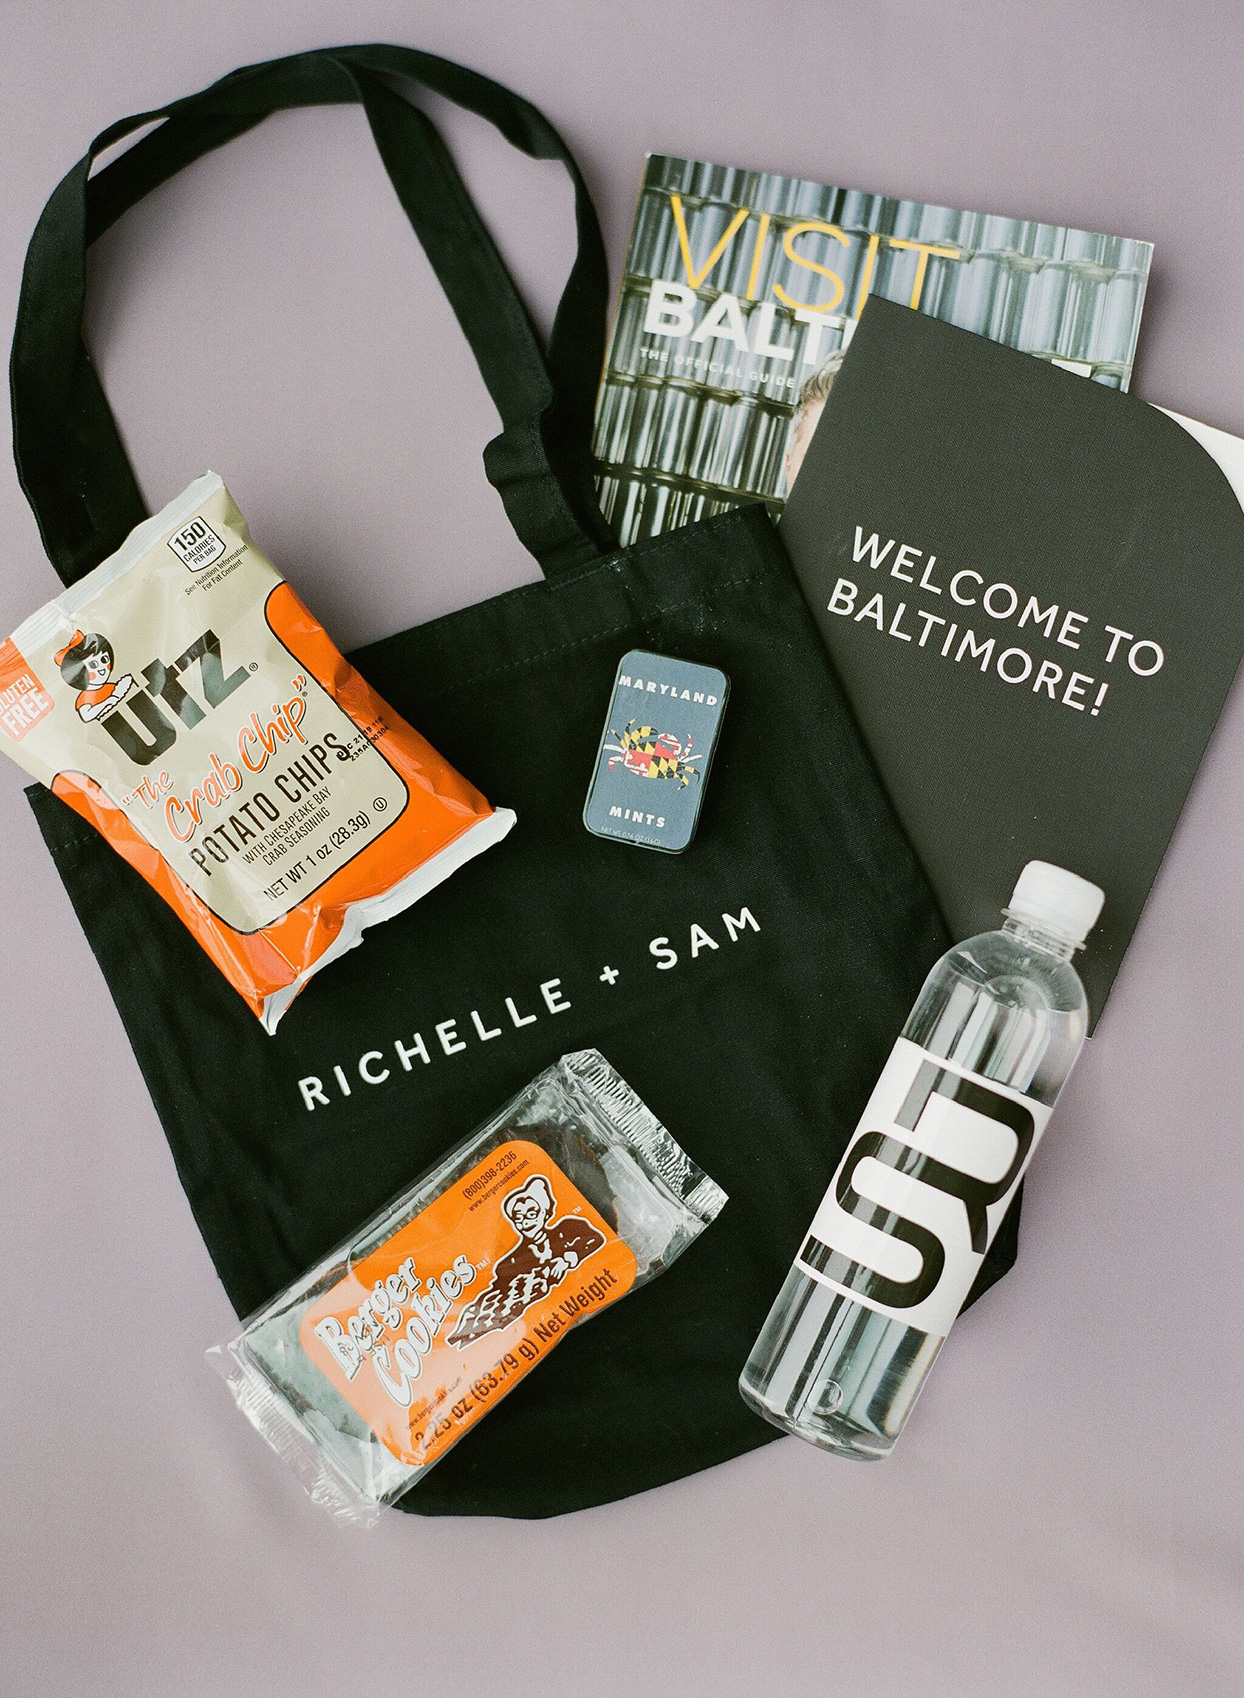 wedding welcome bags with local treats, monogrammed water bottle, and visitor's guide